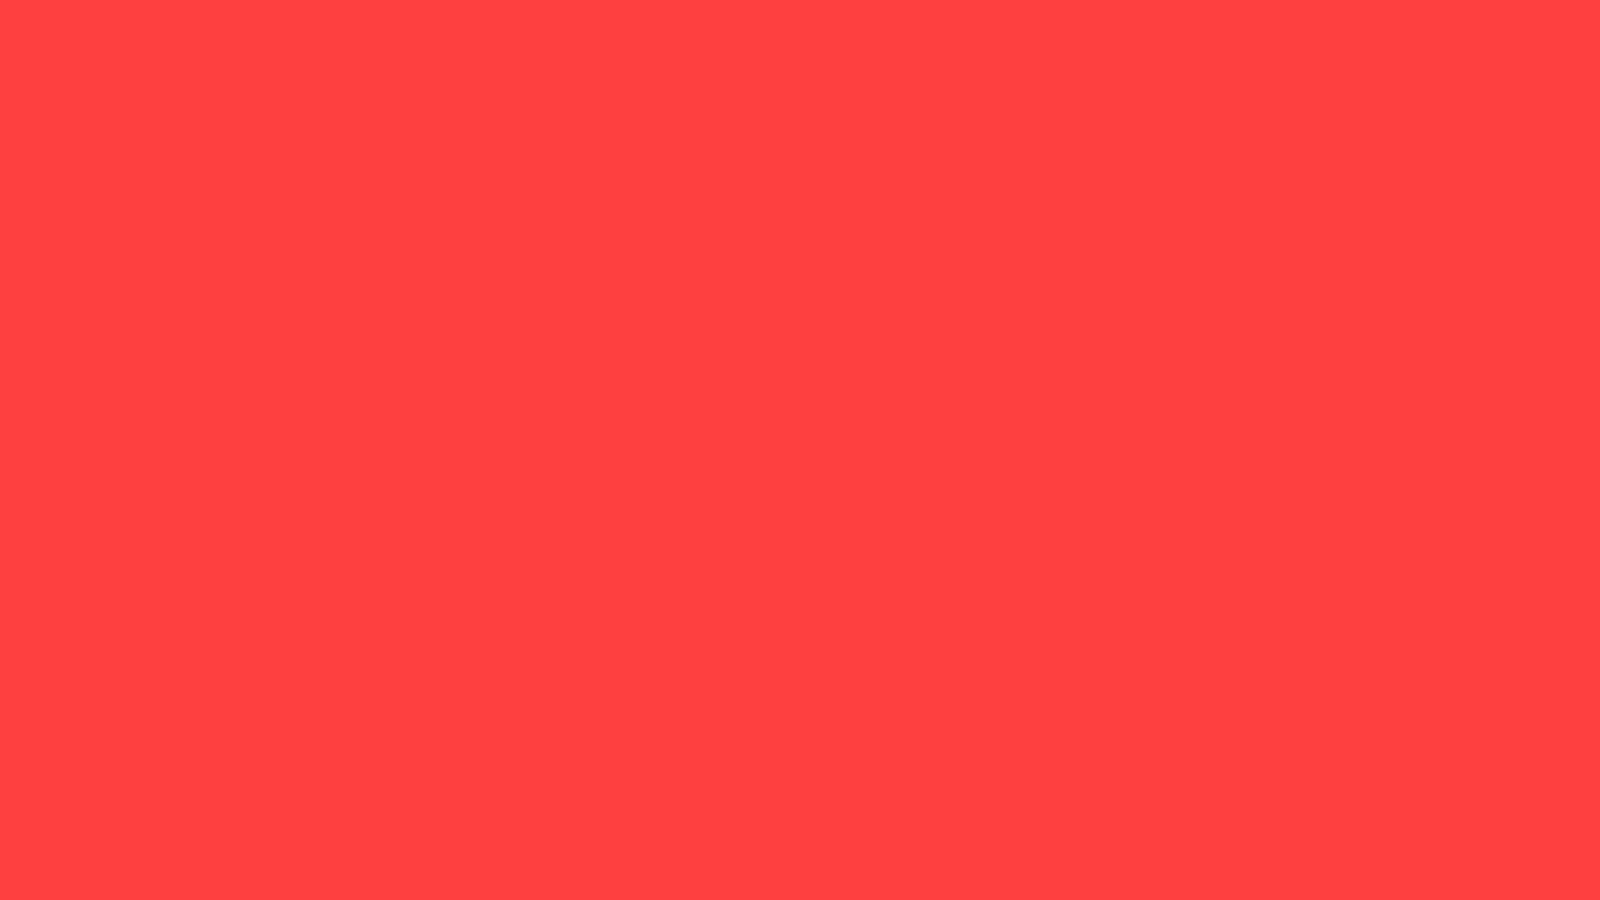 1600x900 Coral Red Solid Color Background